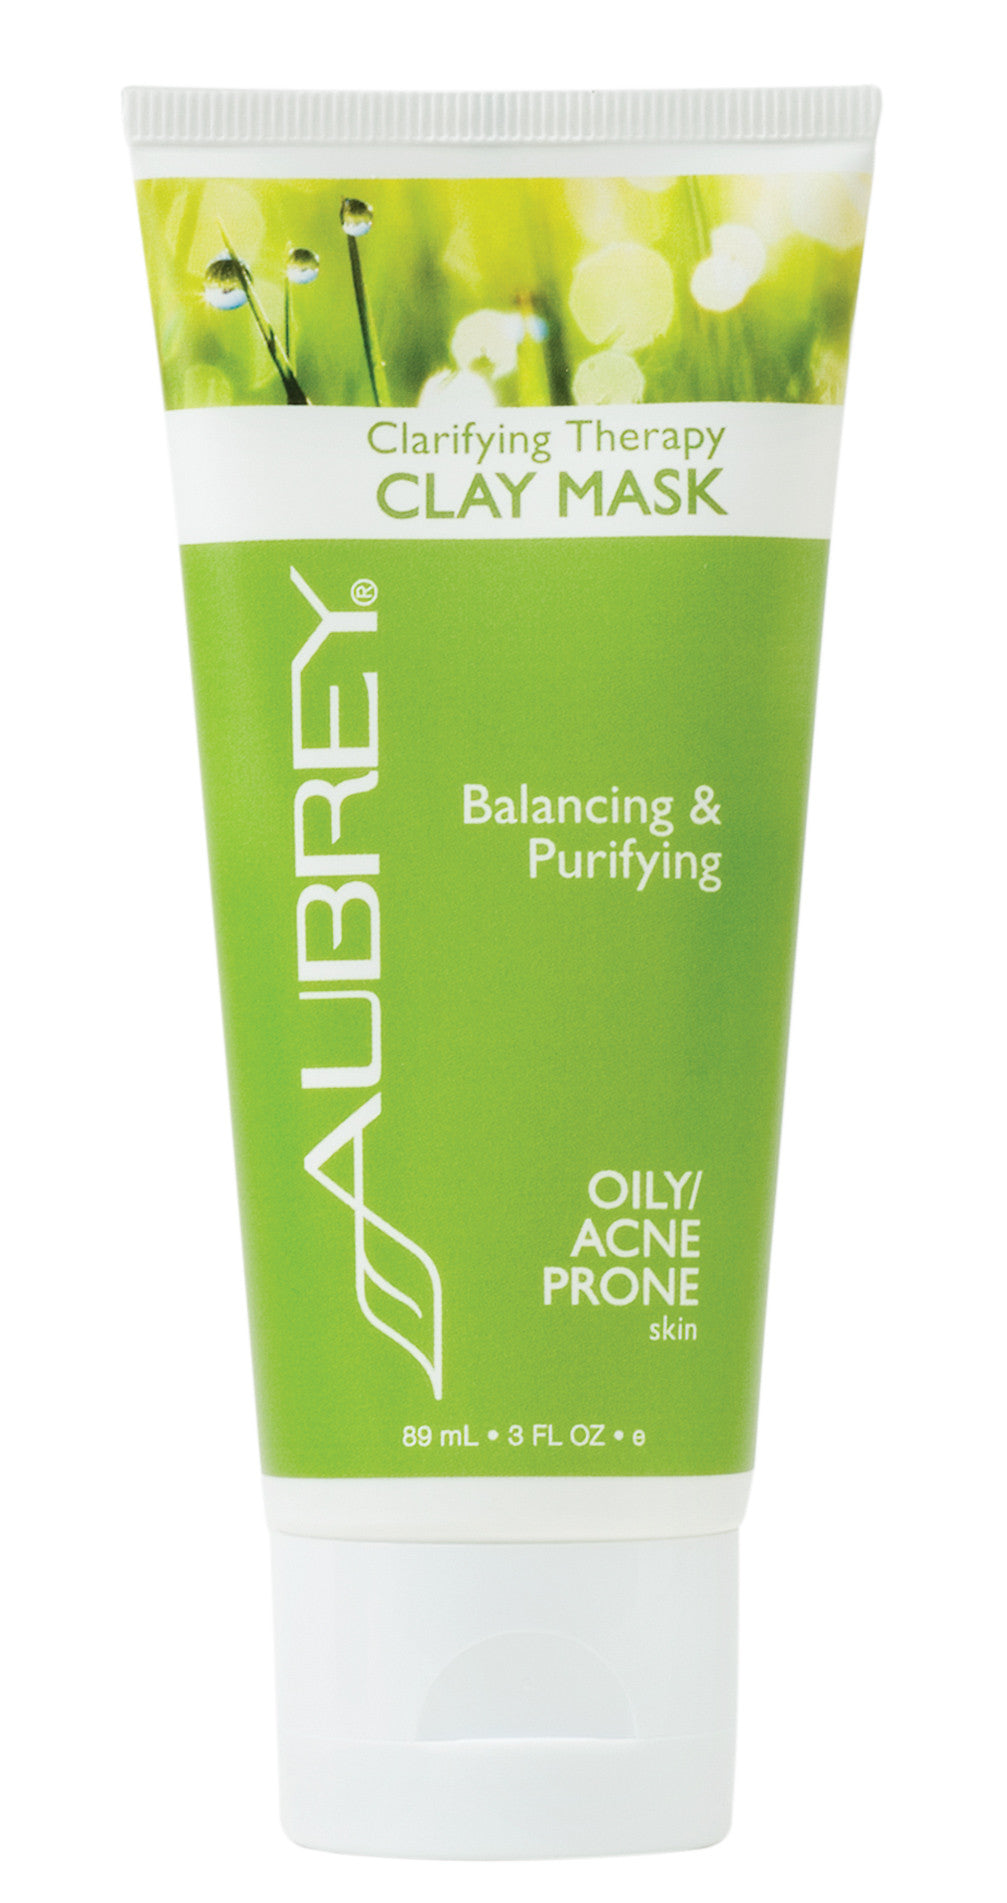 Aubrey® Clarifying Therapy Clay Mask (Oily/Acne Prone Skin)